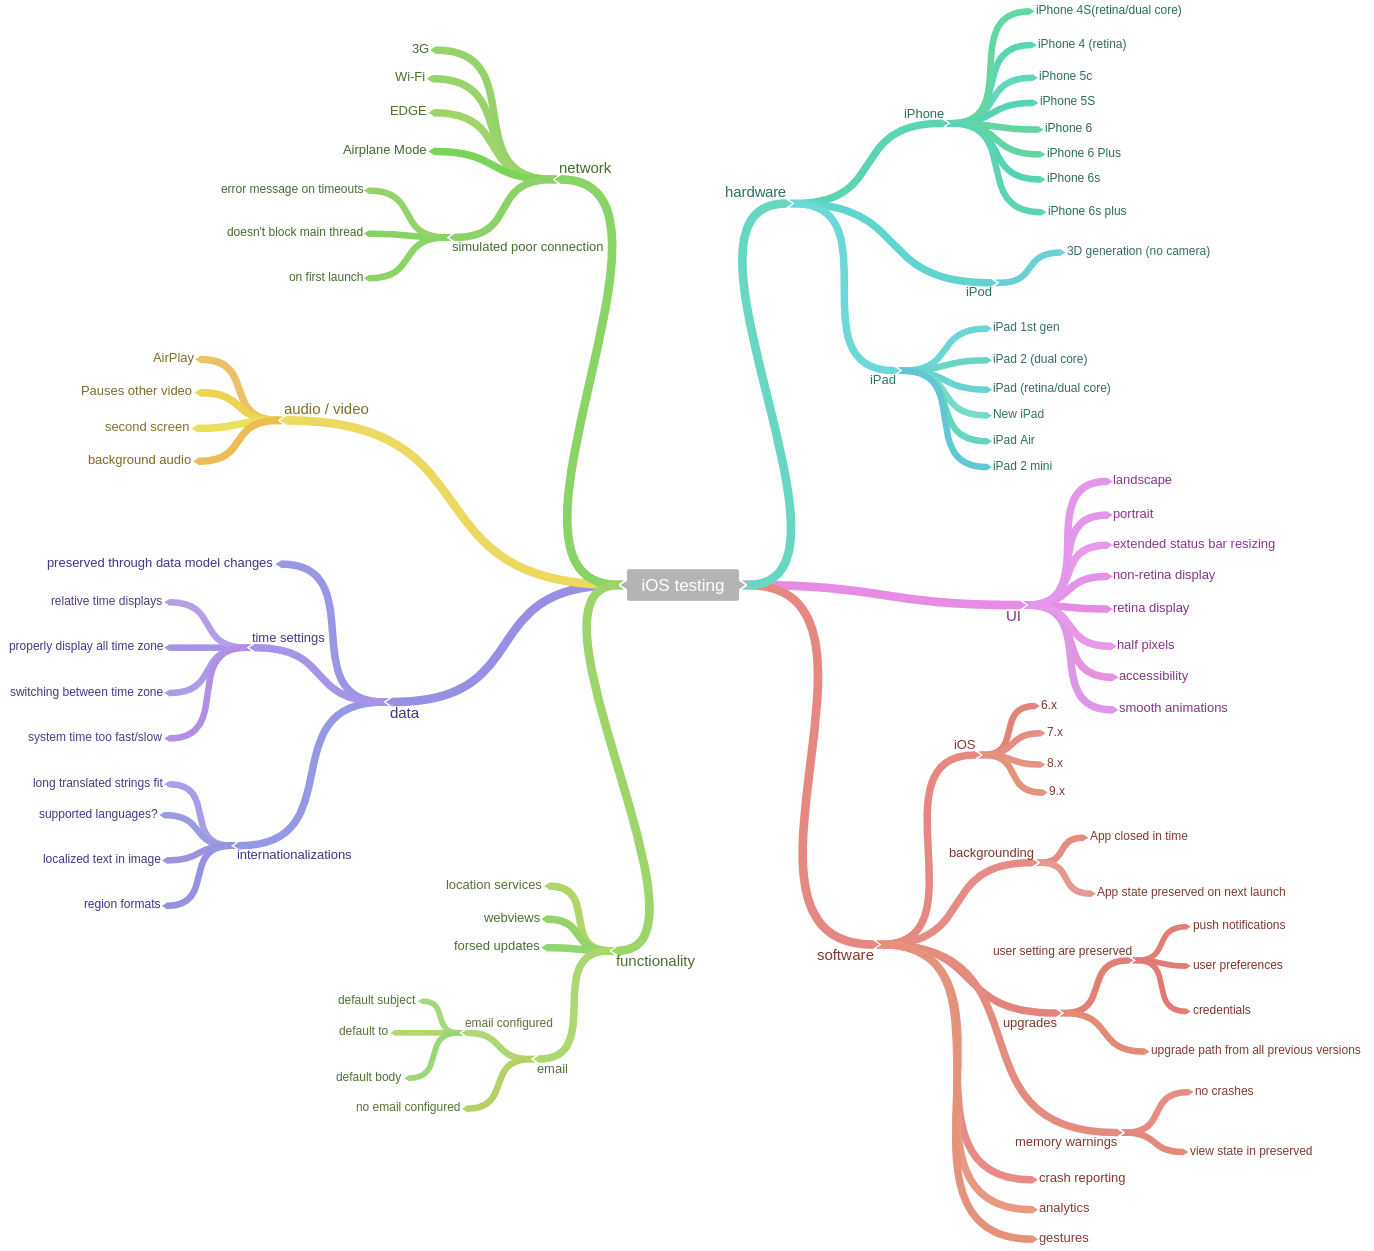 iOS family mind map